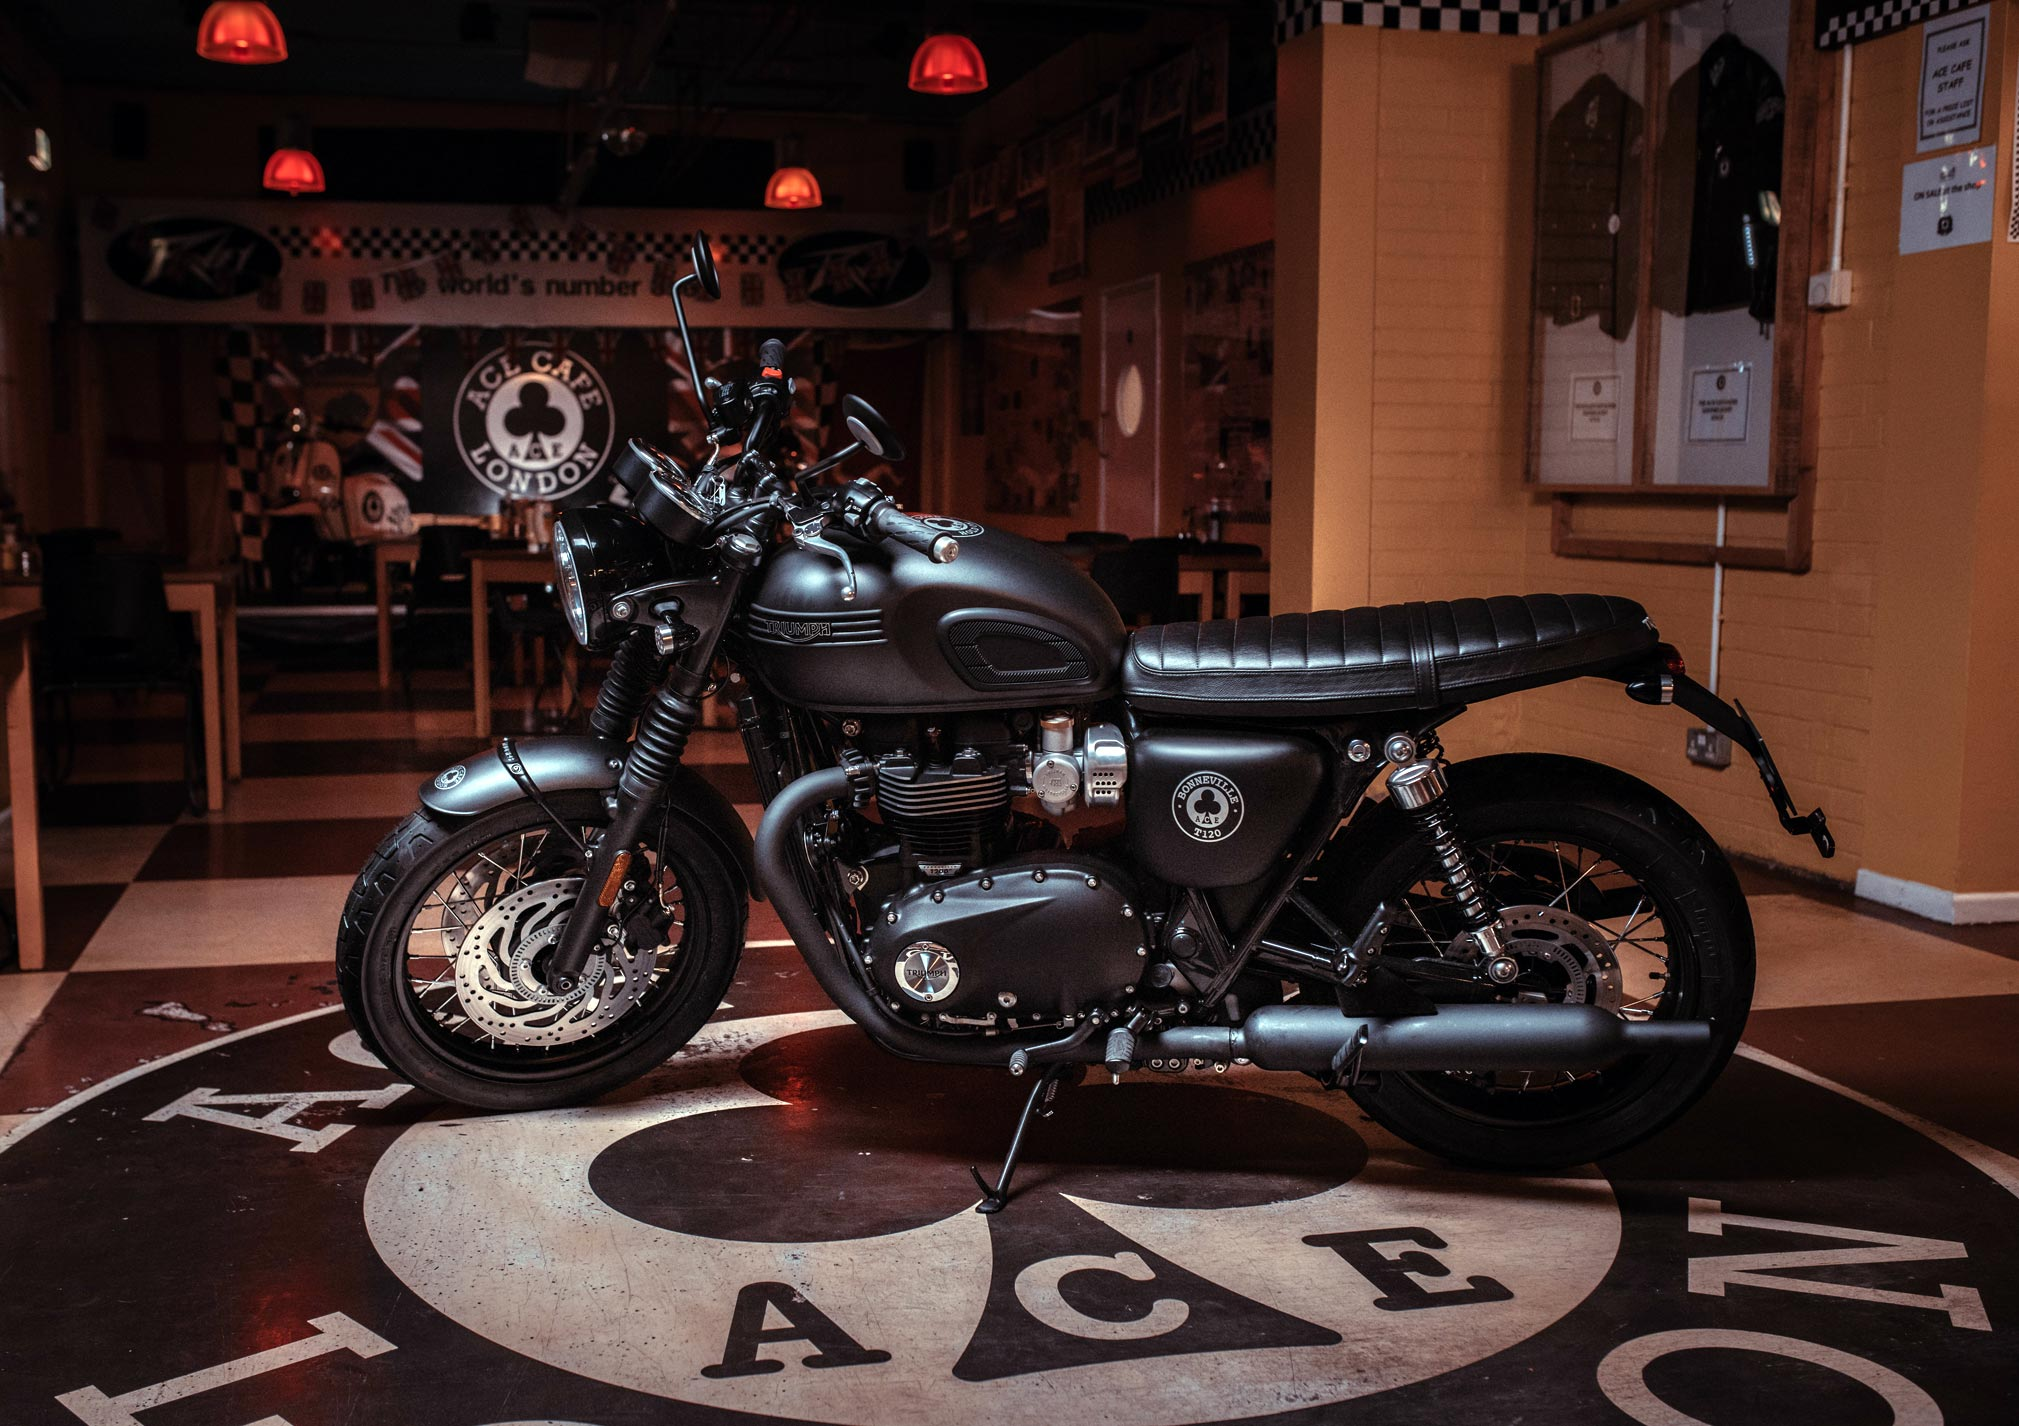 2019 Triumph Bonneville T120 Ace Guide • Total Motorcycle